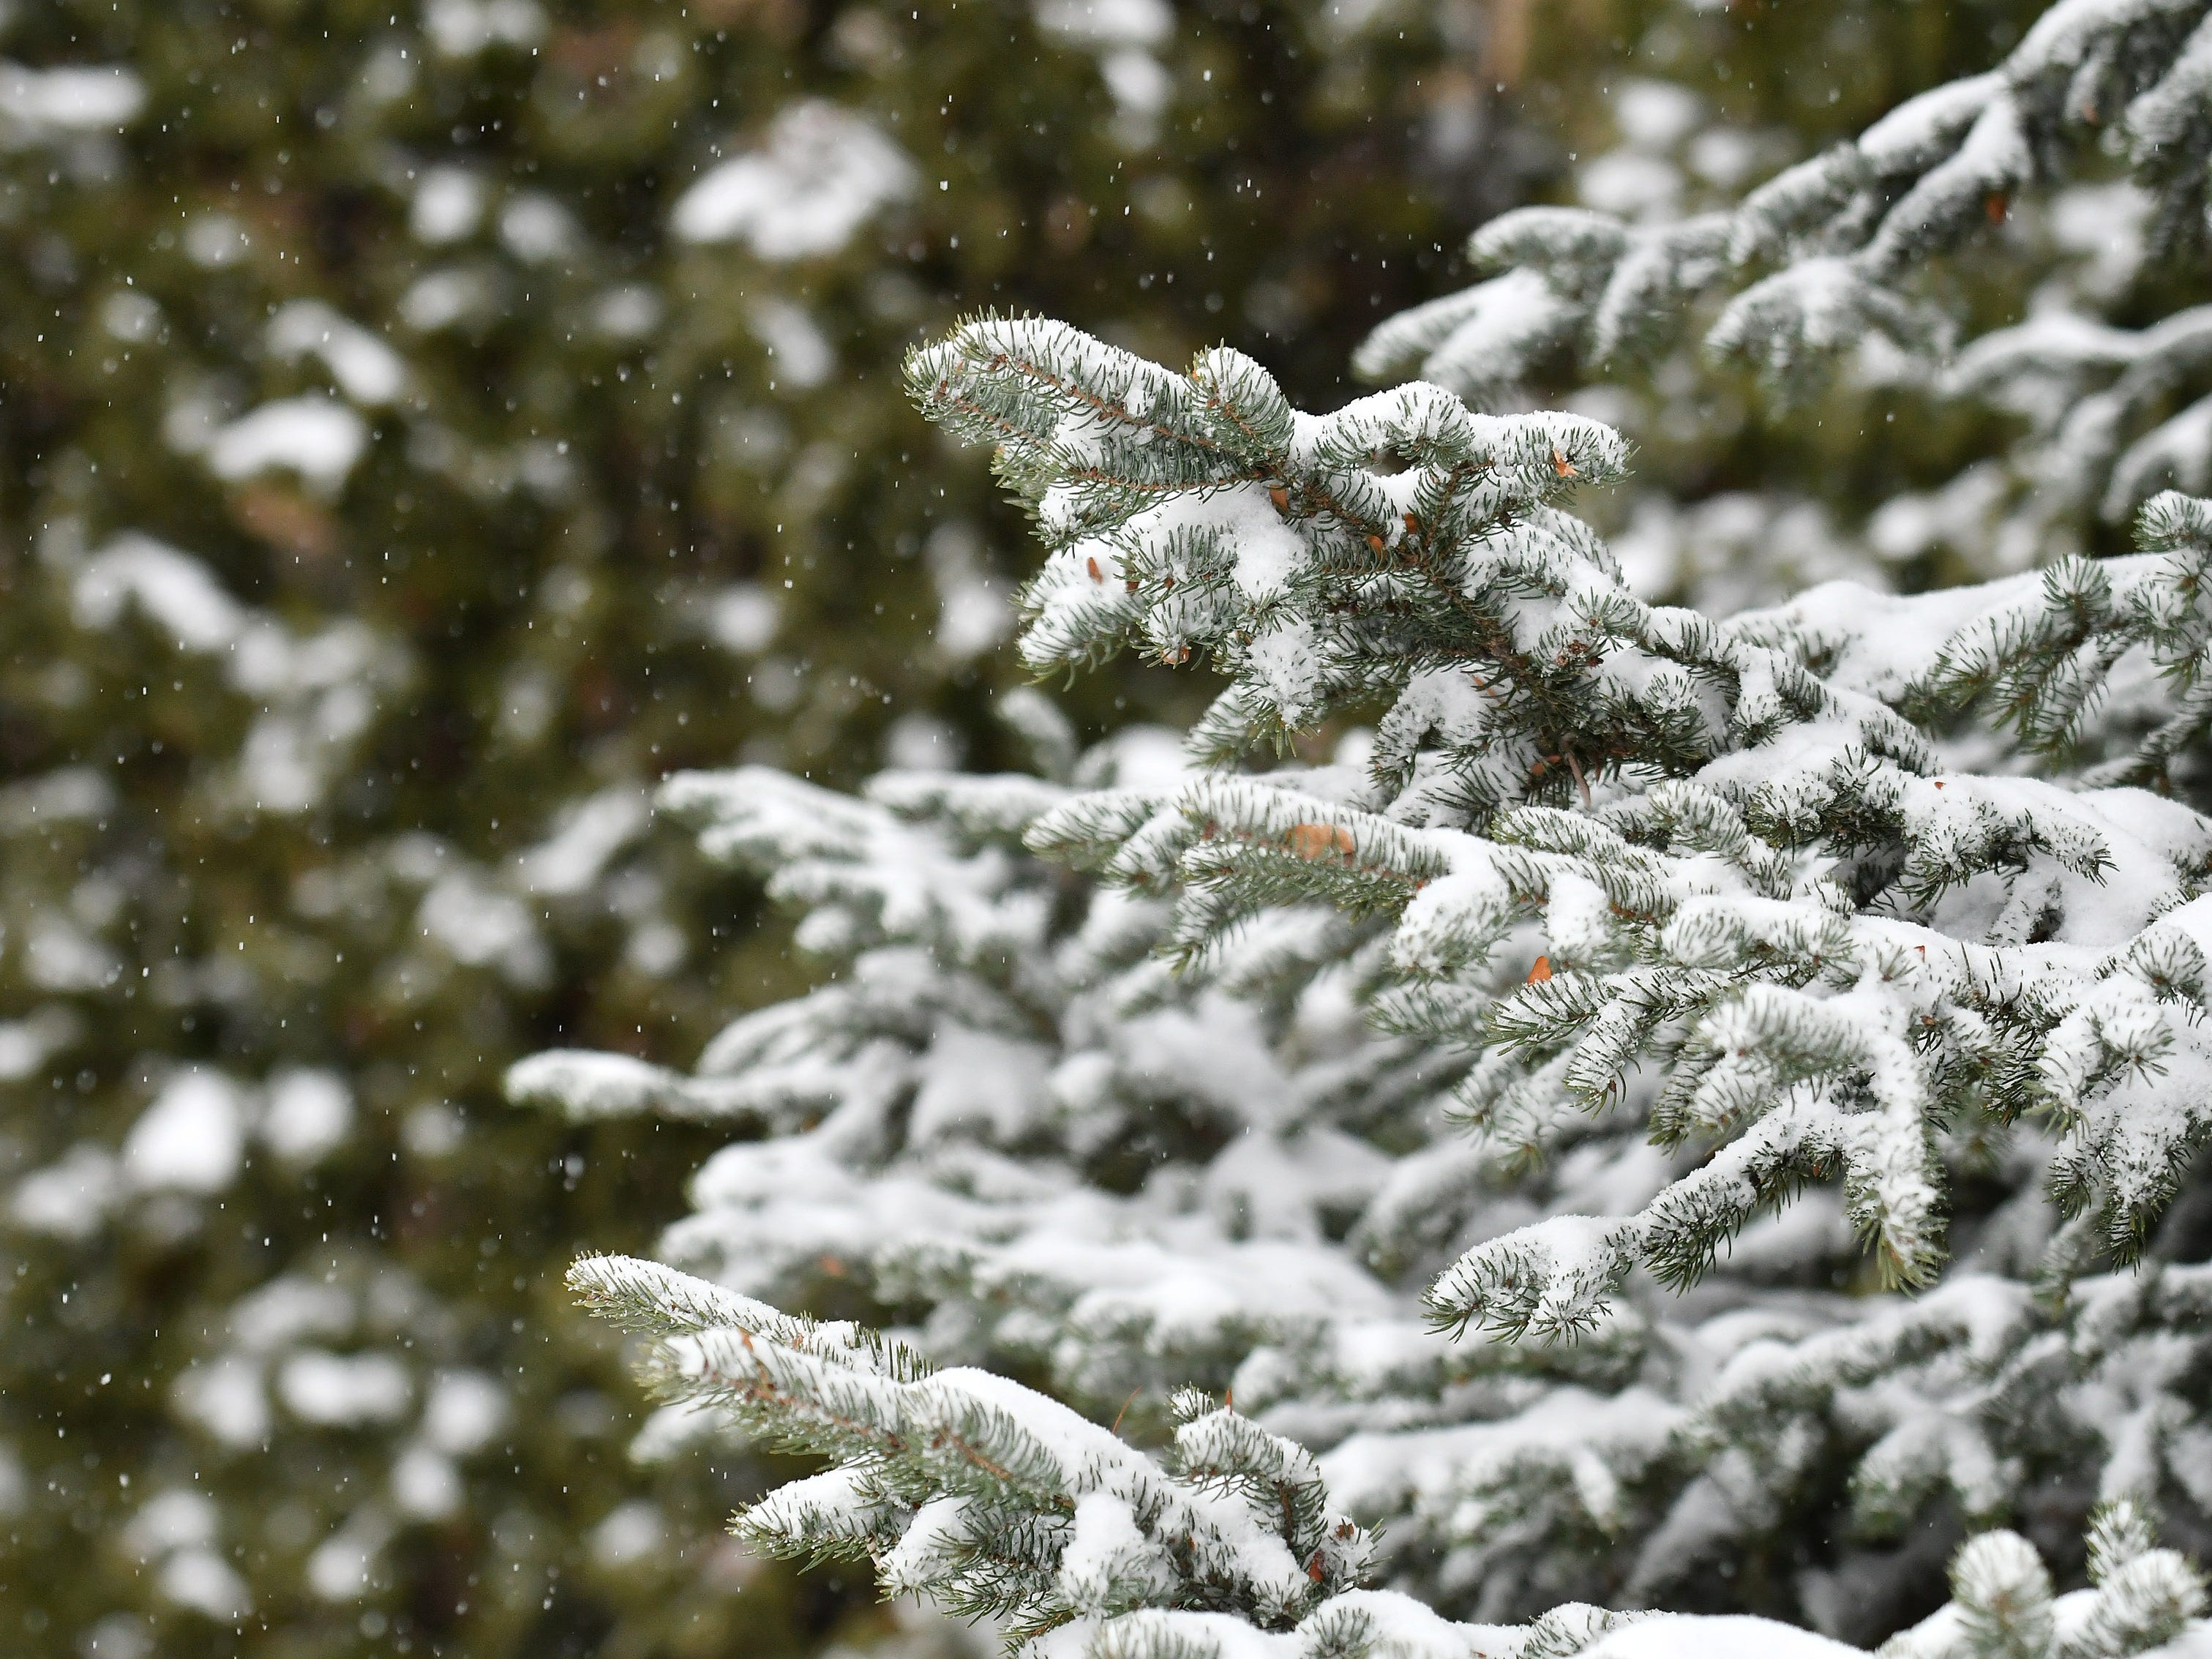 Snow falls and some clings to the branches of a pine tree and bushes in Detroit on Jan. 28, 2019.